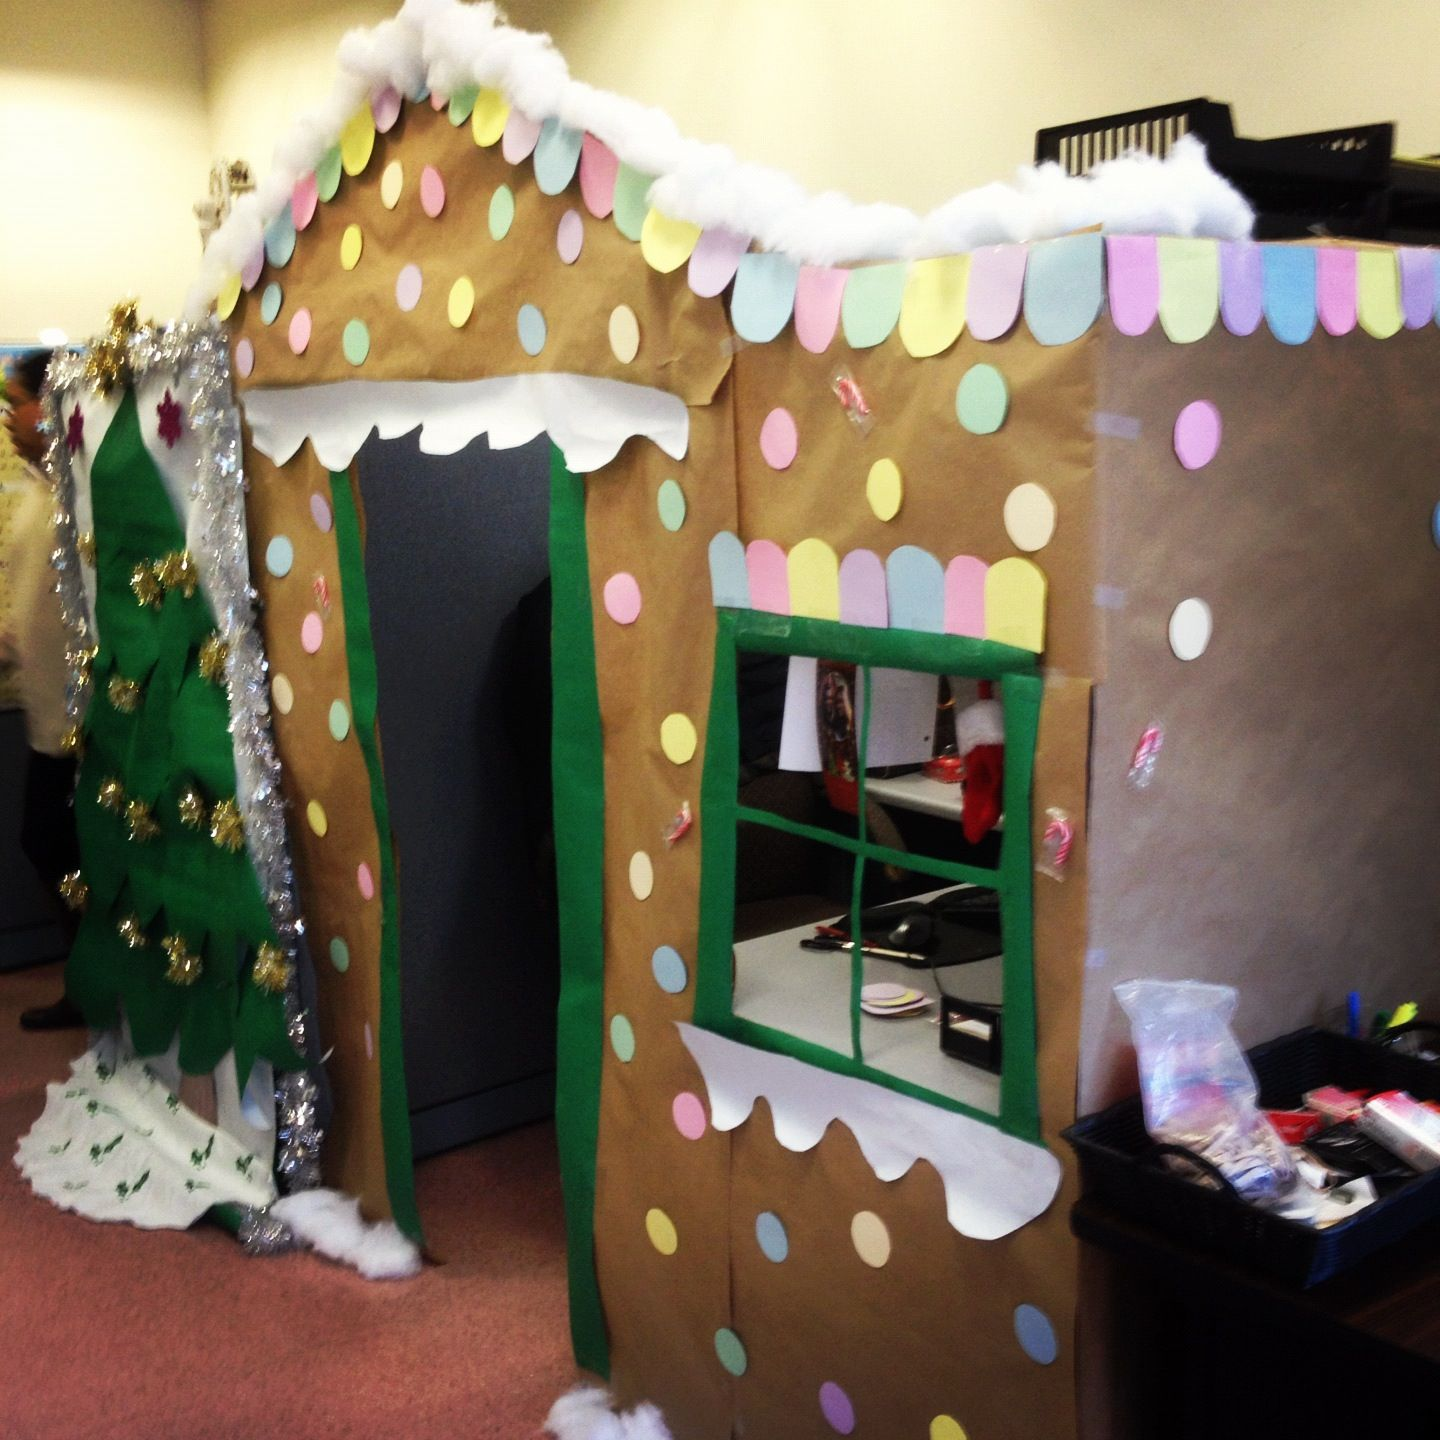 Christmas Decorations For Your Cubicle: Turn Your Cubicle Into A Gingerbread House For Christmas